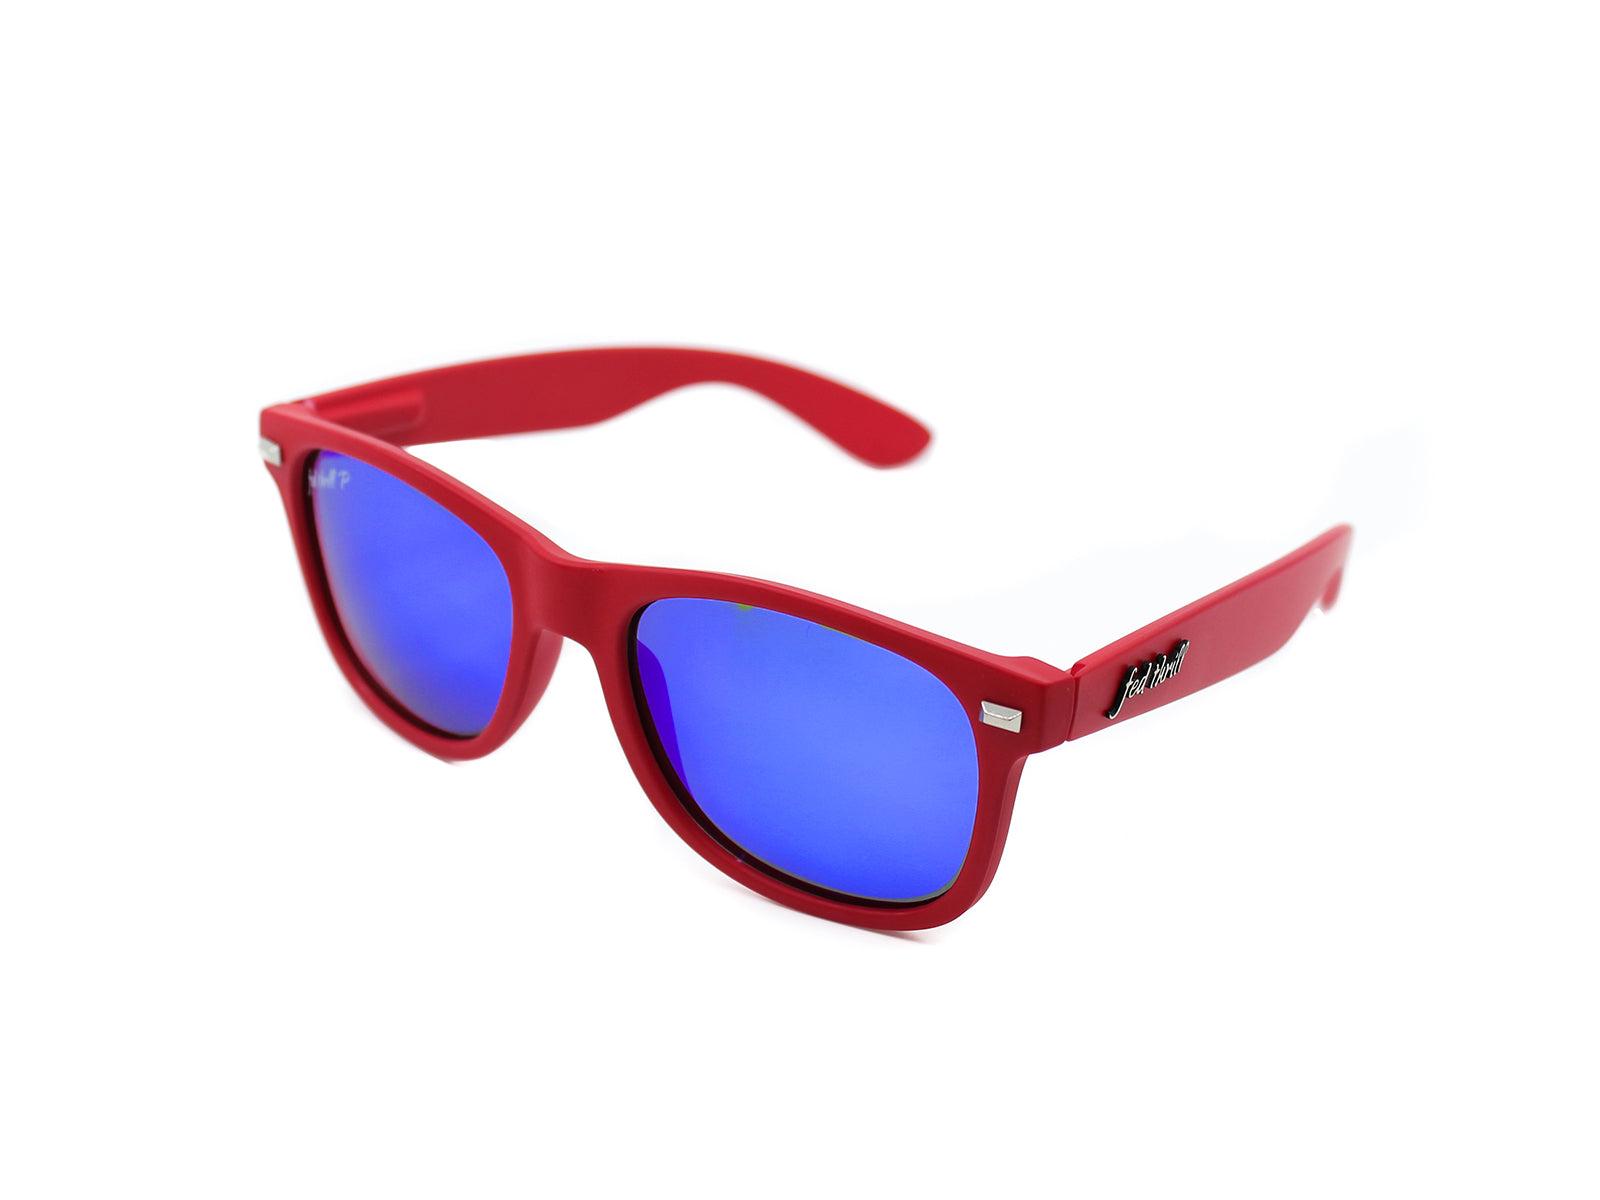 Fultons - Calverts: Red / Mirrored Blue Polarized